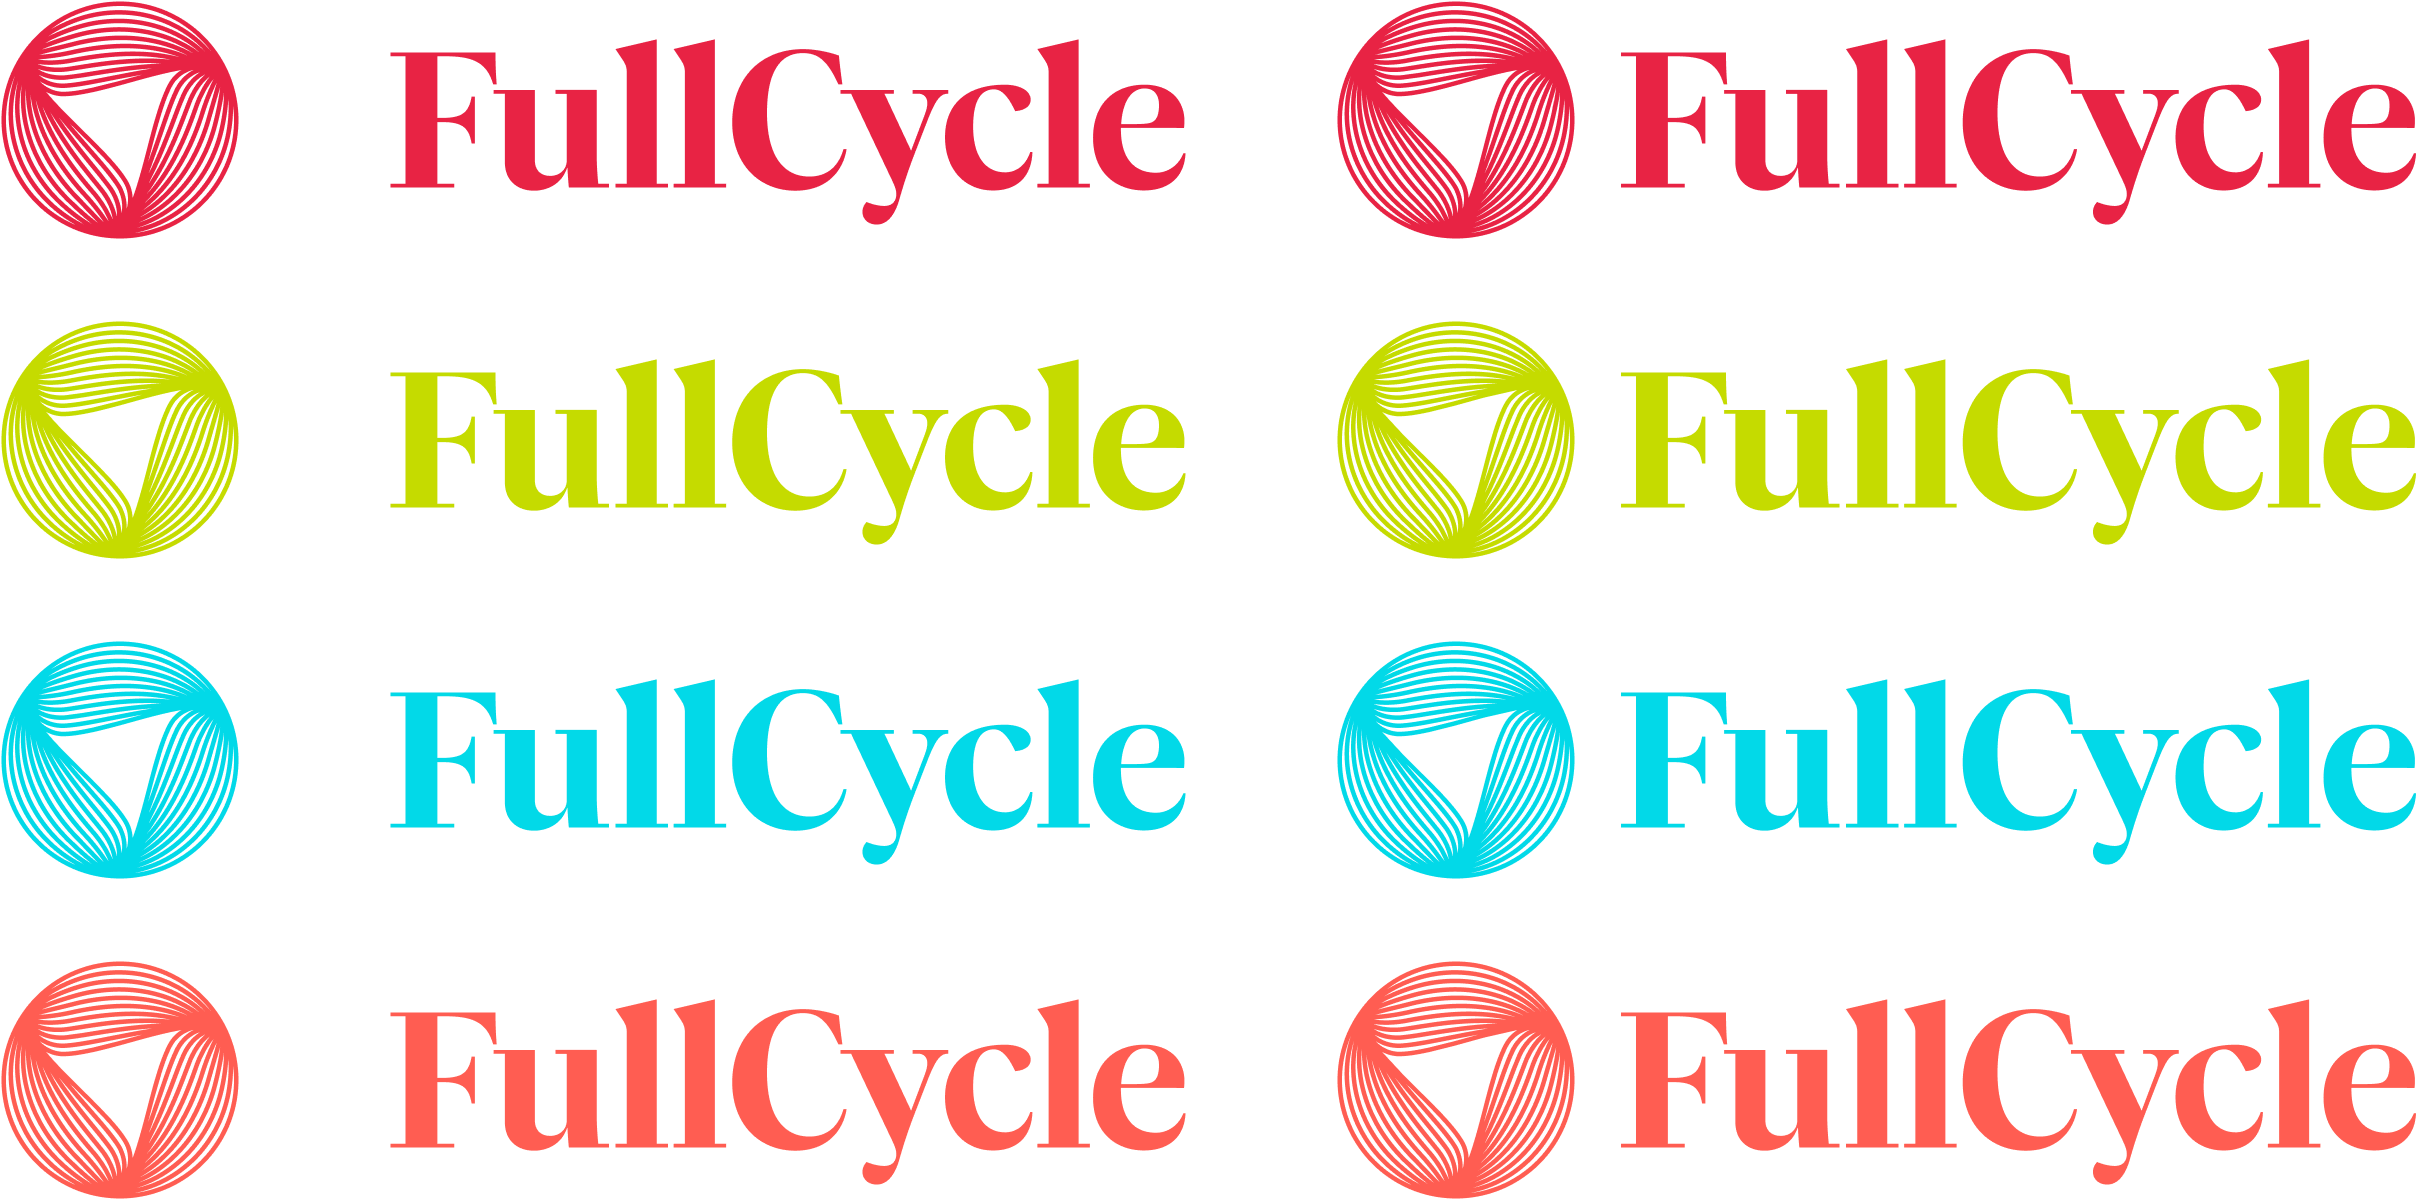 FullCycle logo, wordmark, and lockups in a variety of fruity colors.